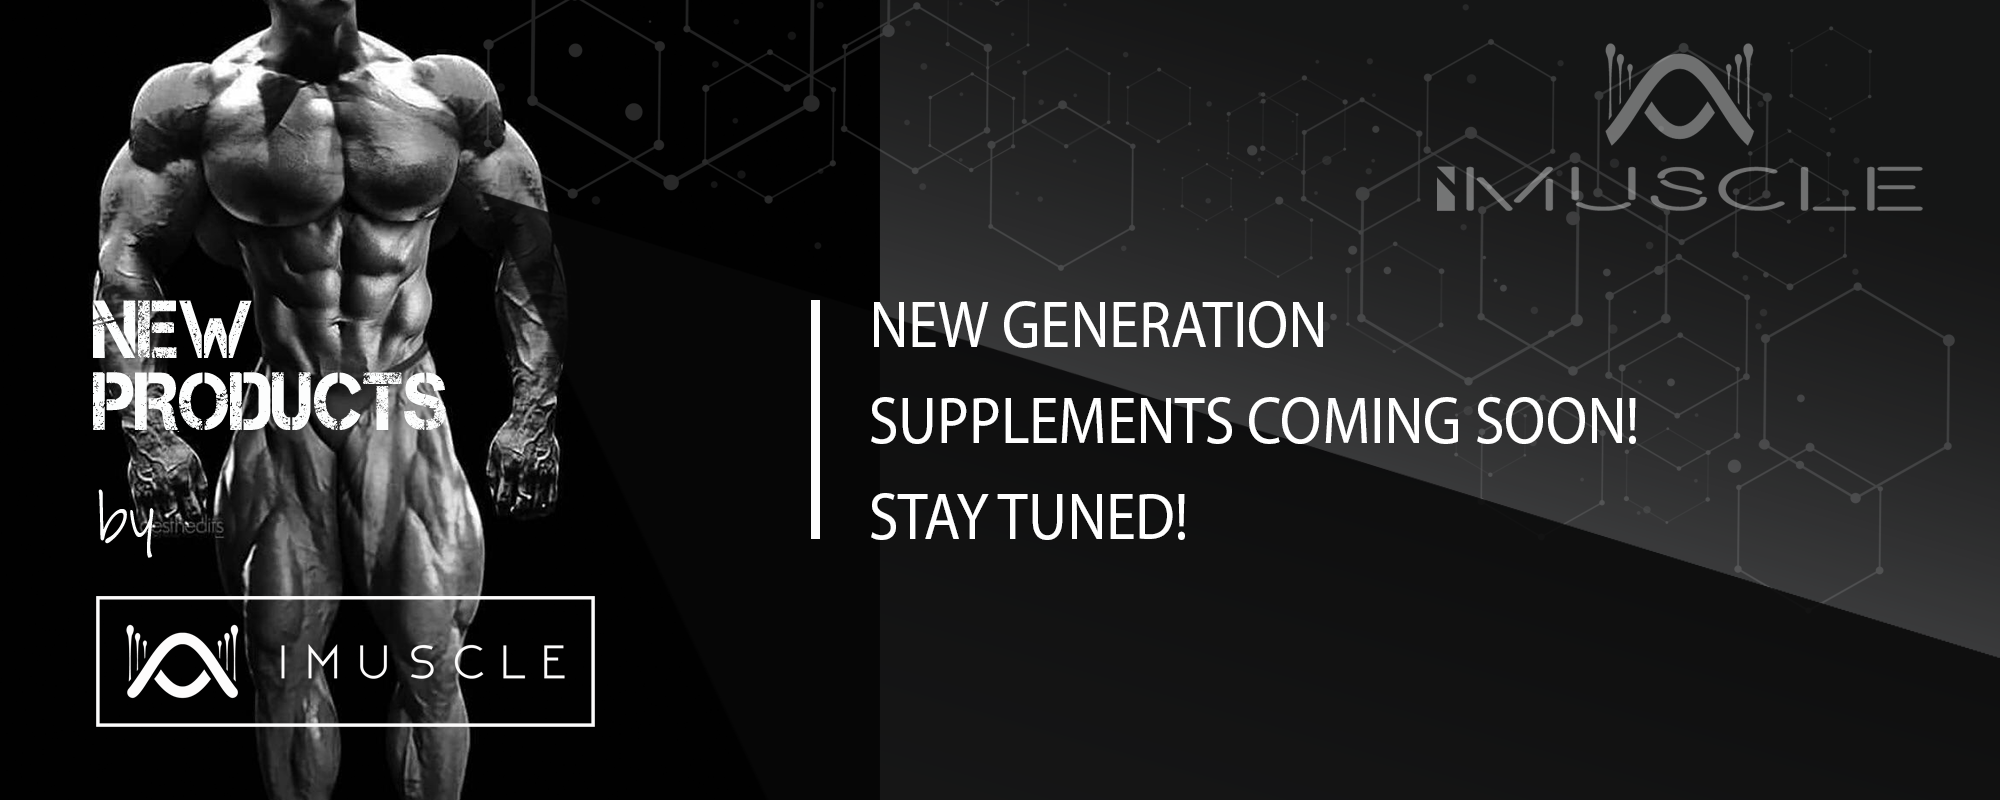 imuscle uk new generation supplements